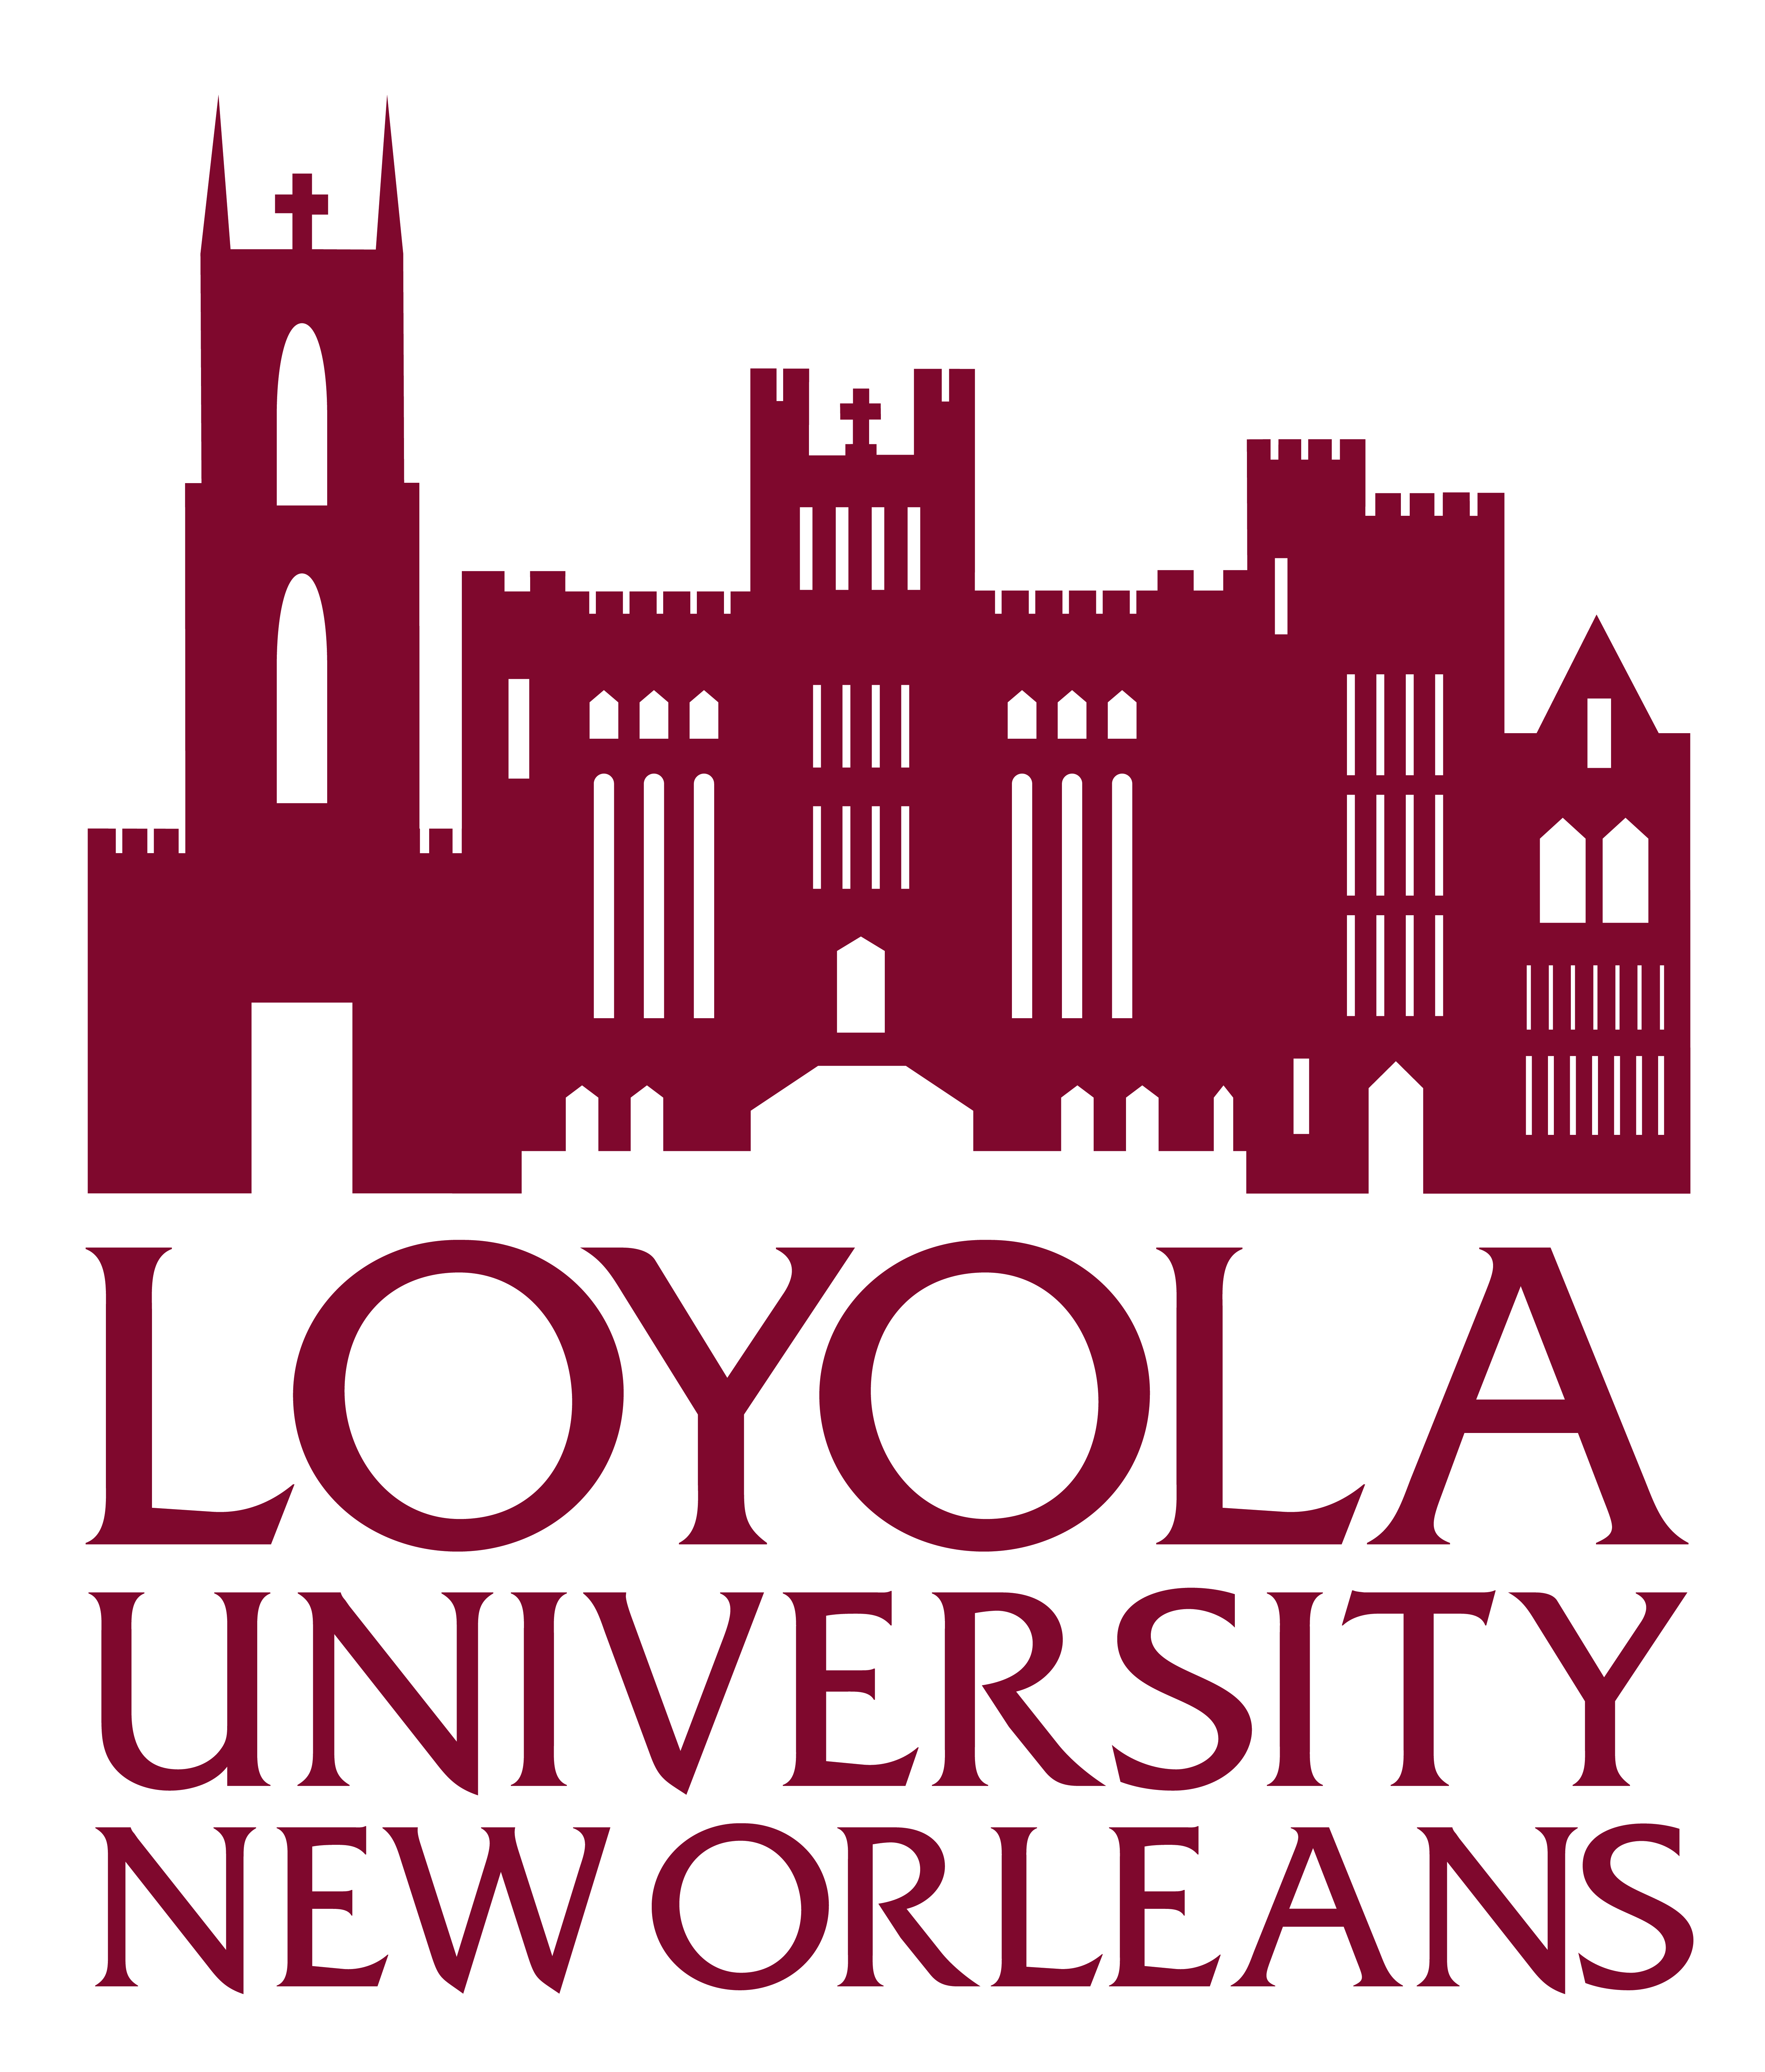 College Loyola University in New Orleans: College of Music and Media